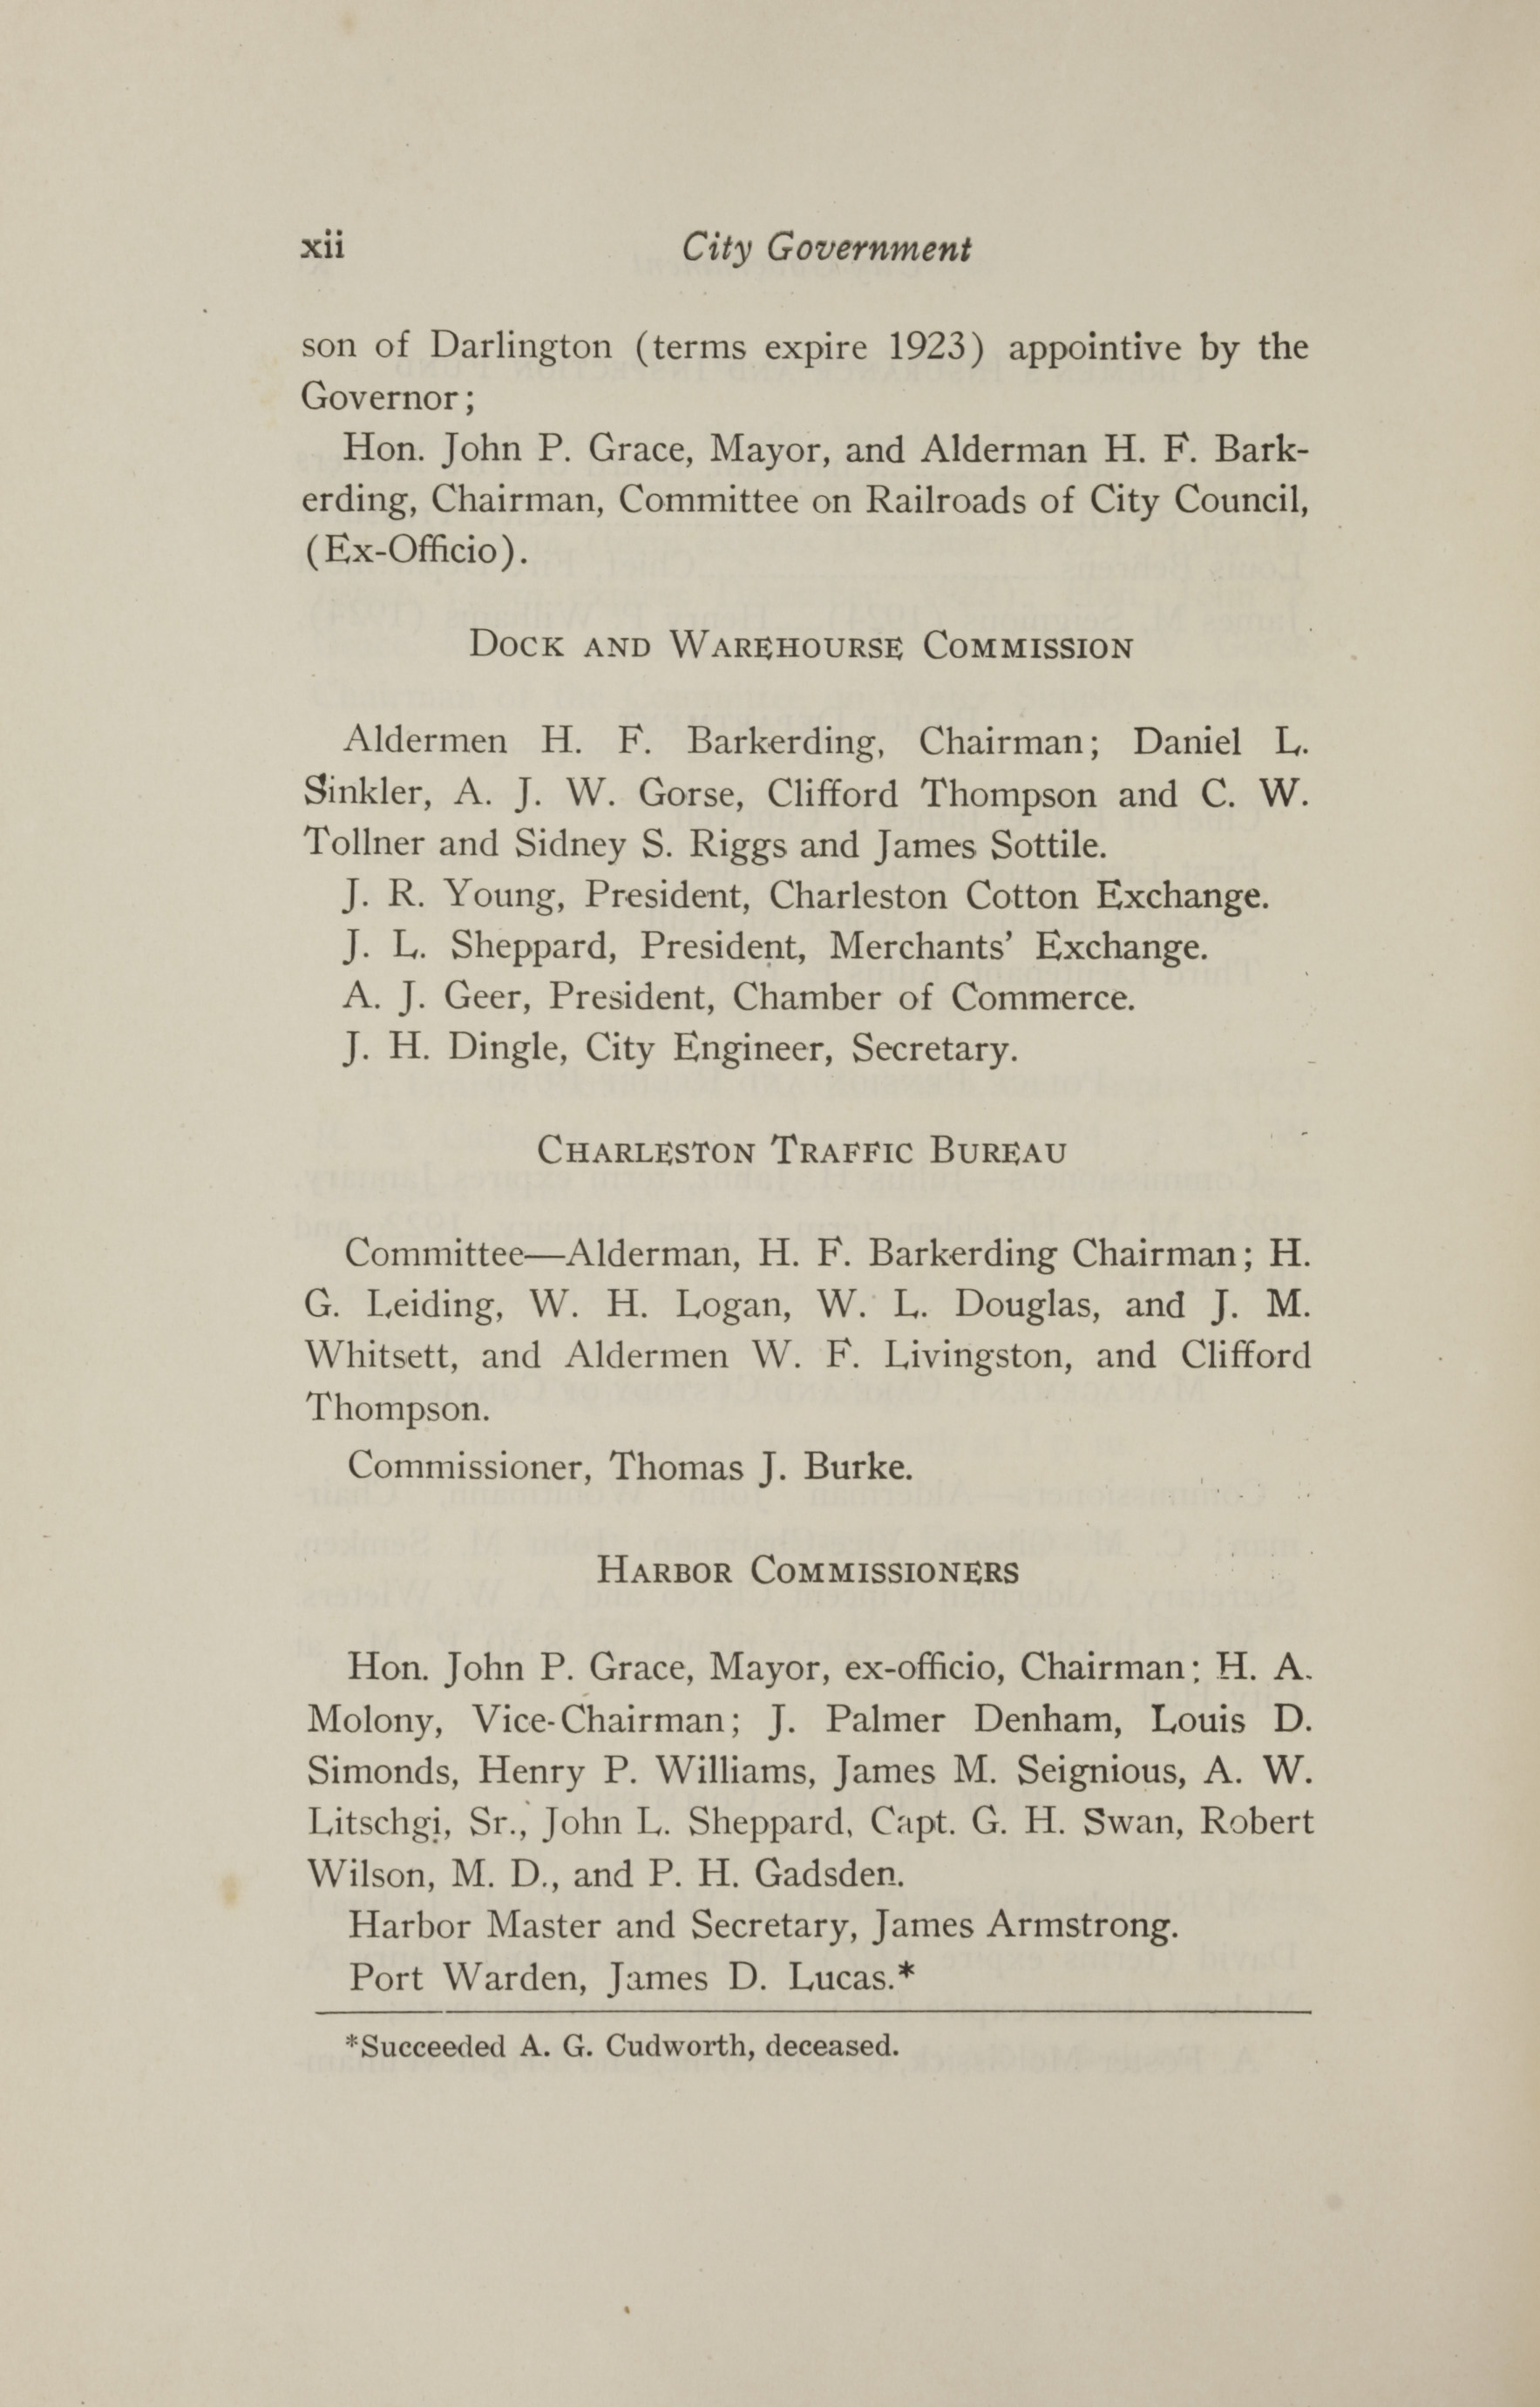 Charleston Yearbook, 1921, page xii